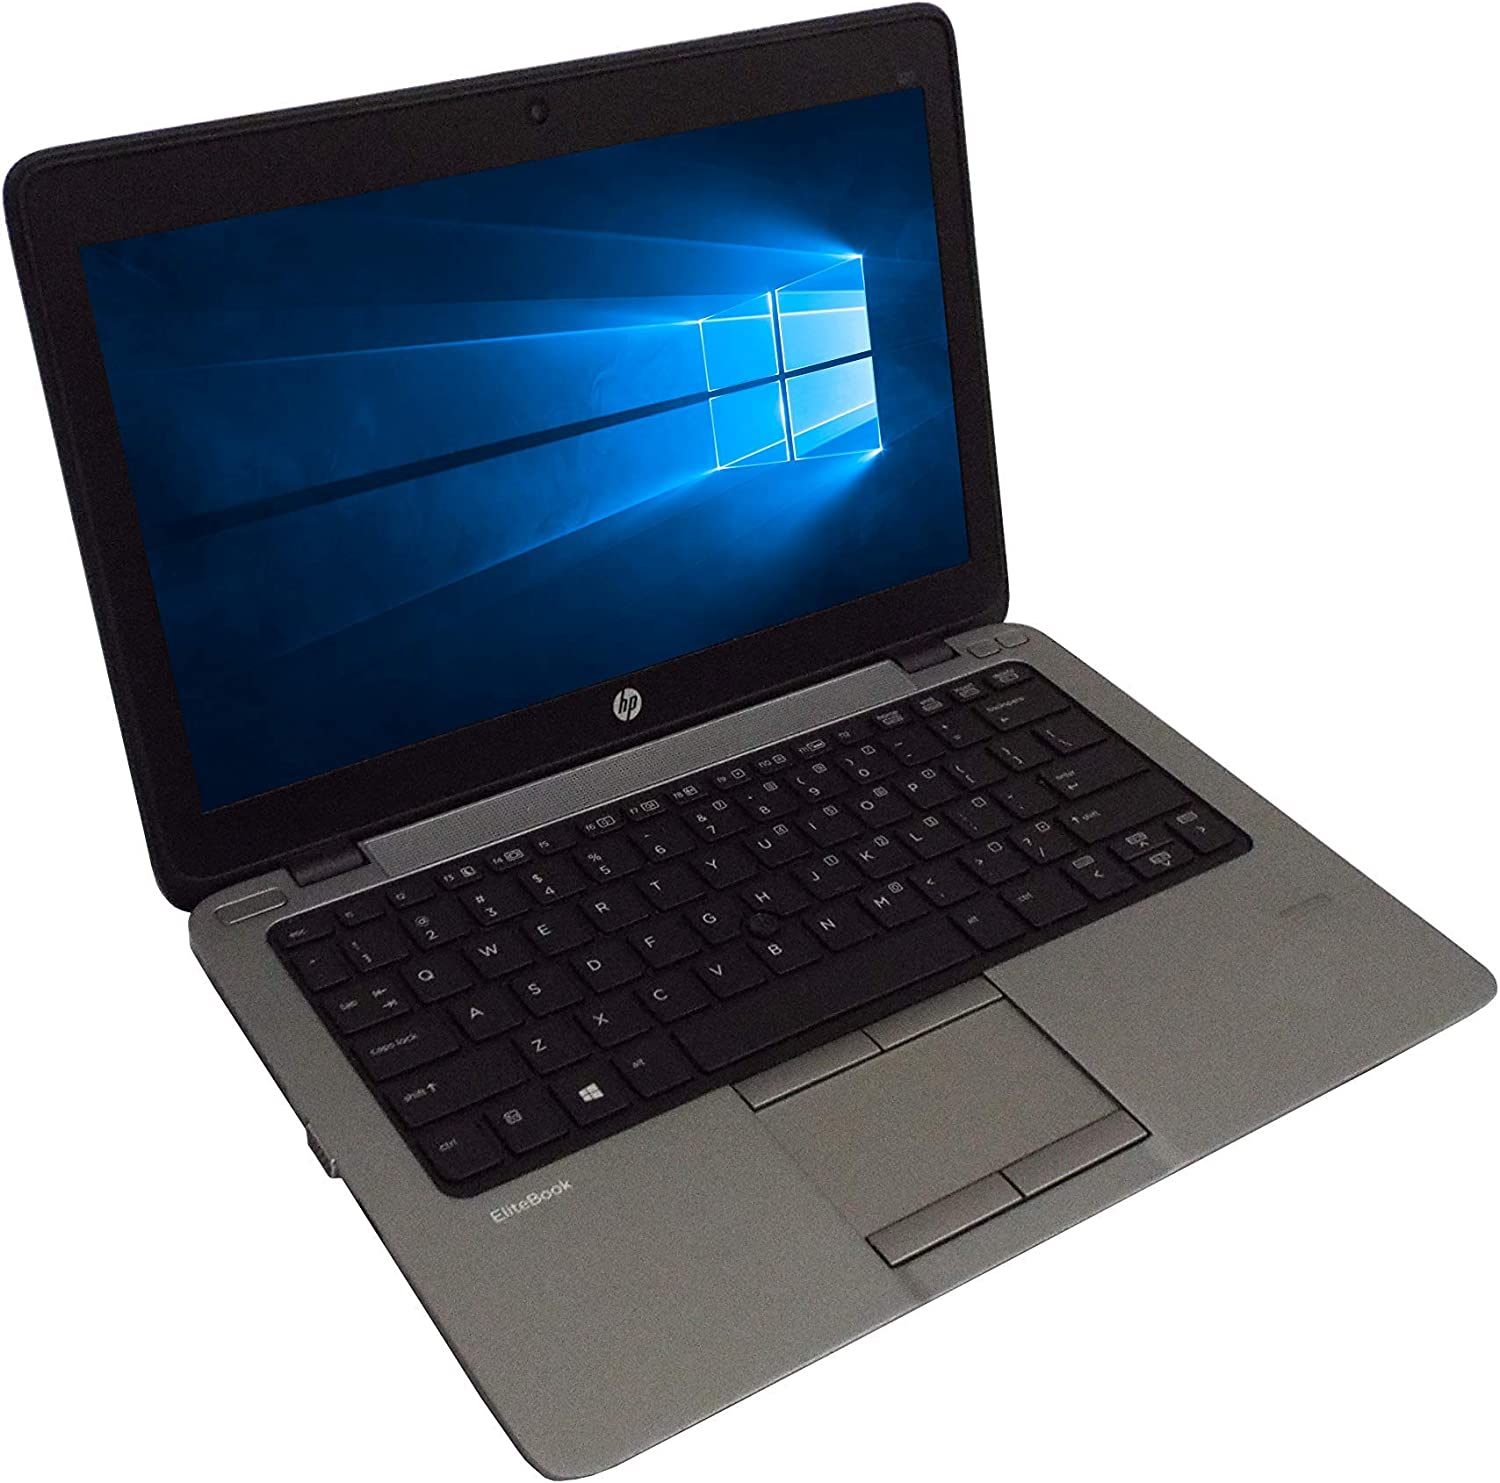 HP EliteBook 820 G2 12.5in 1366x768 HD Laptop, Intel i7-5600U 2.60GHz, 8GB DDR3 RAM, 256GB SSD, Windows 10 Pro x64 (Renewed)